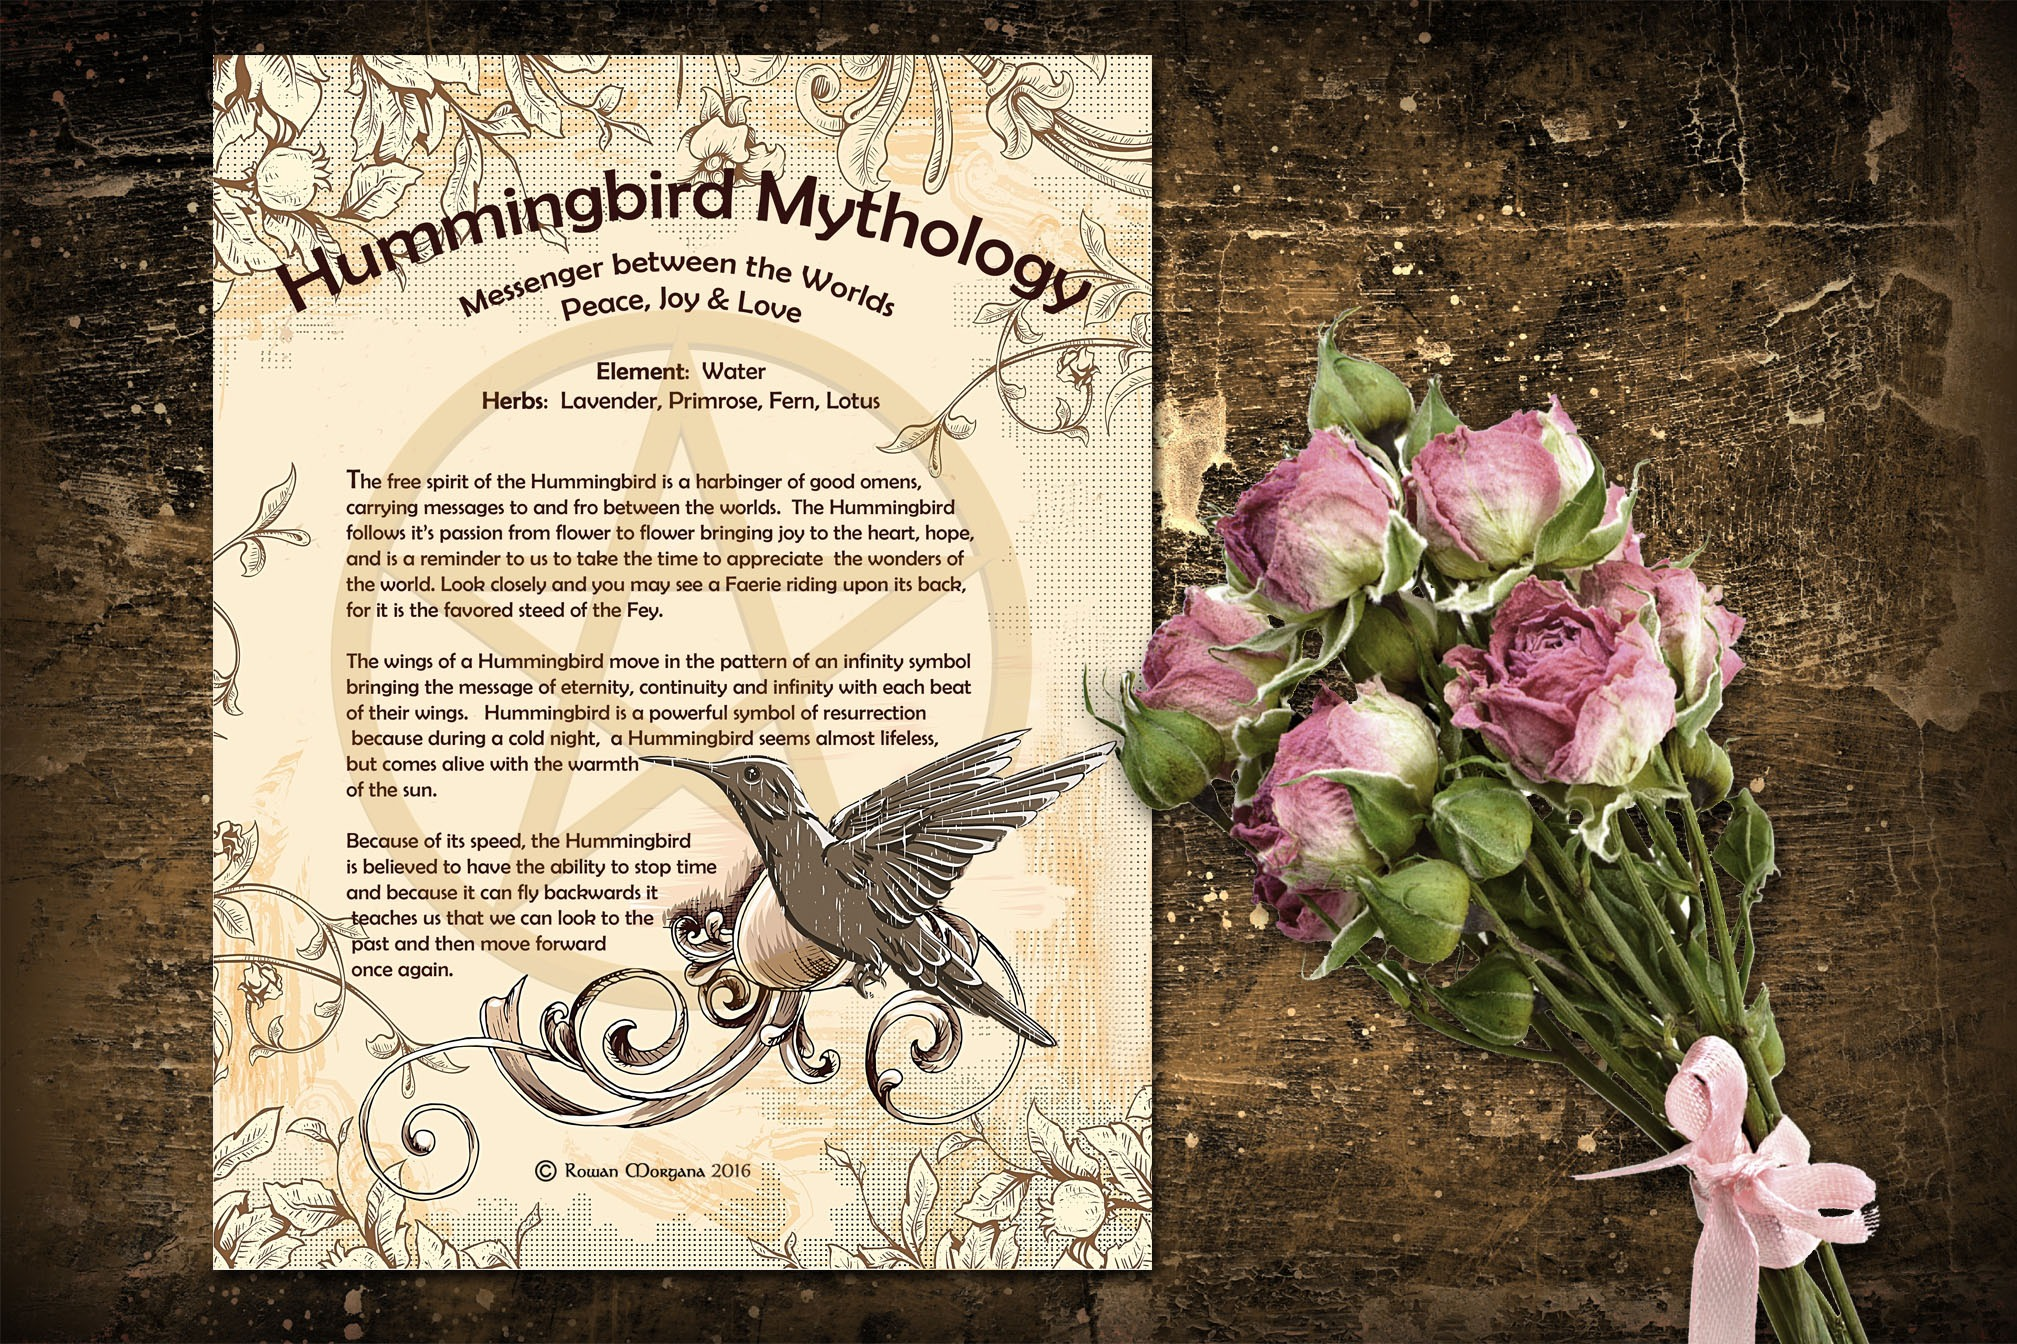 HUMMINGBIRD Myths & Correspondences